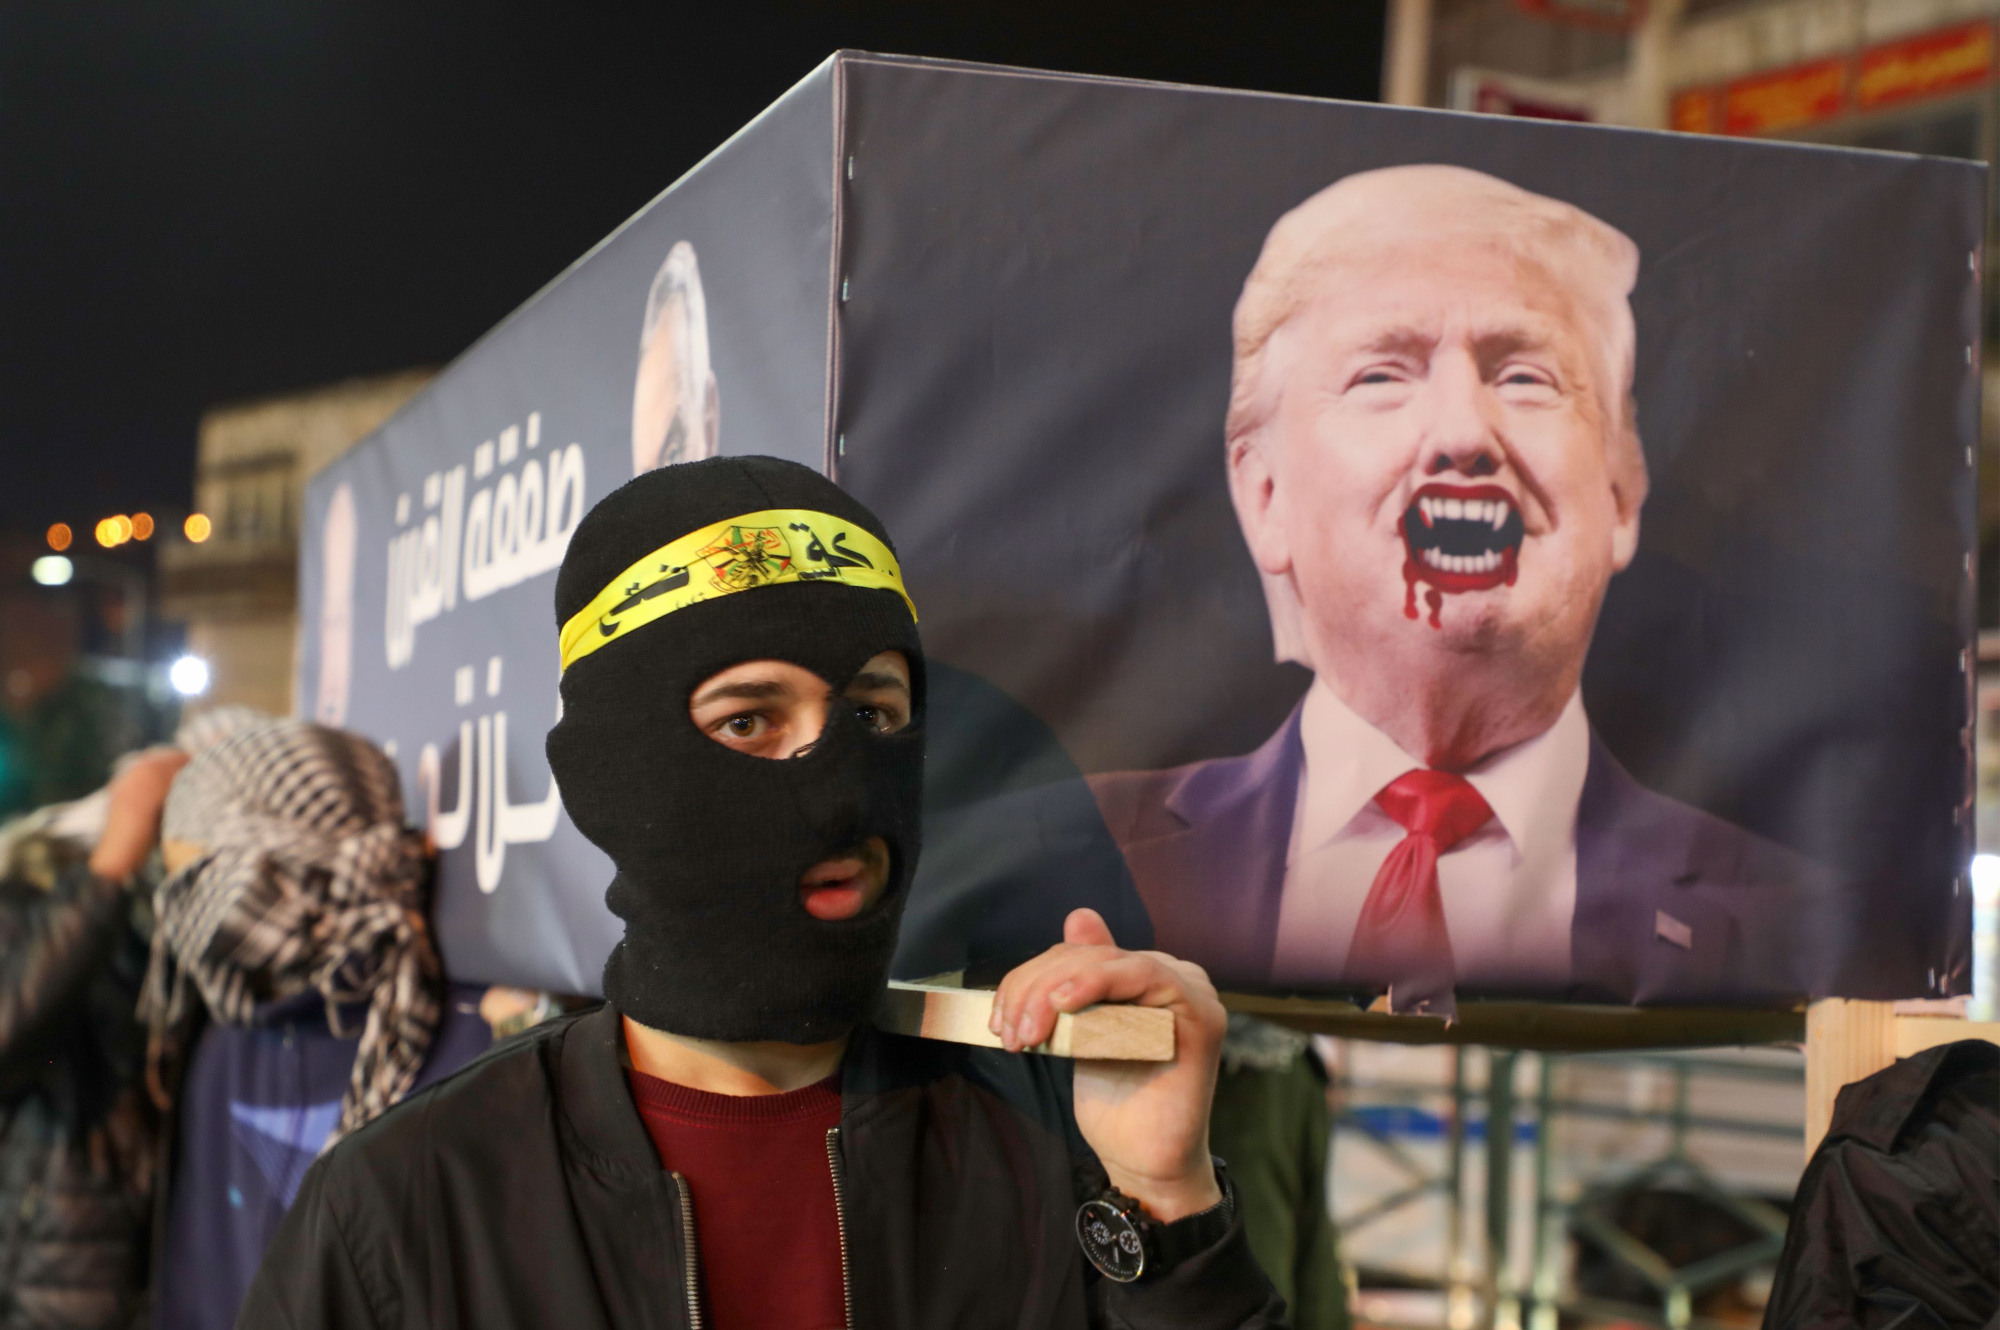 Palestinians protest U.S. President Donald Trump's Middle East peace proposal in the West Bank city of Nablus on Tuesday, hours before it was revealed. | AFP-JIJI